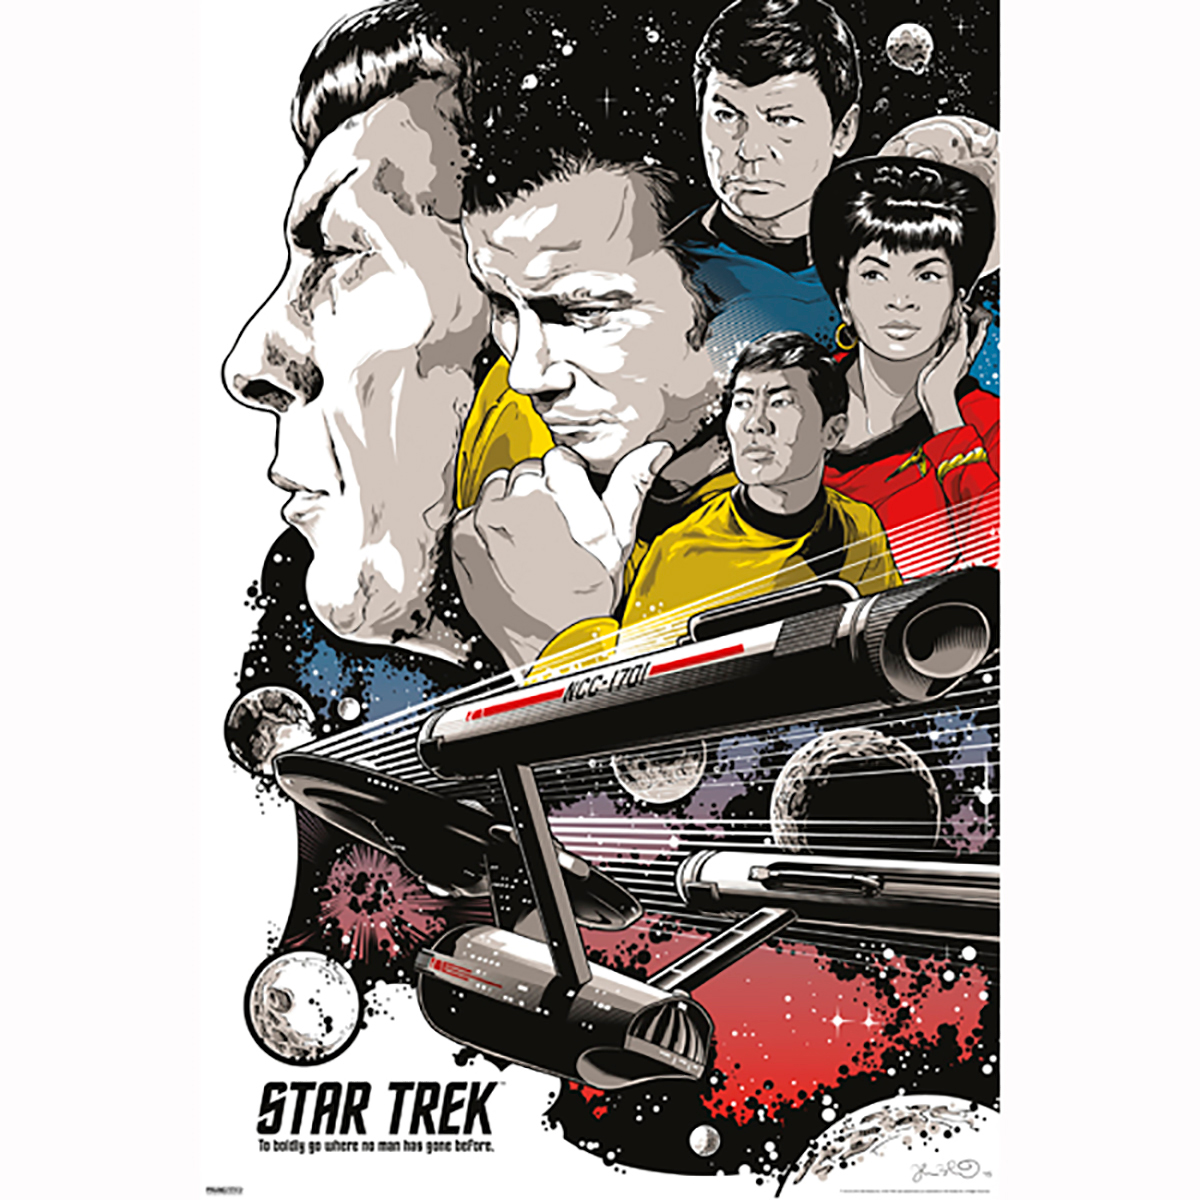 Star Trek 50th Art Collection To Boldly Go by Joshua Budich Poster [13 x 9]